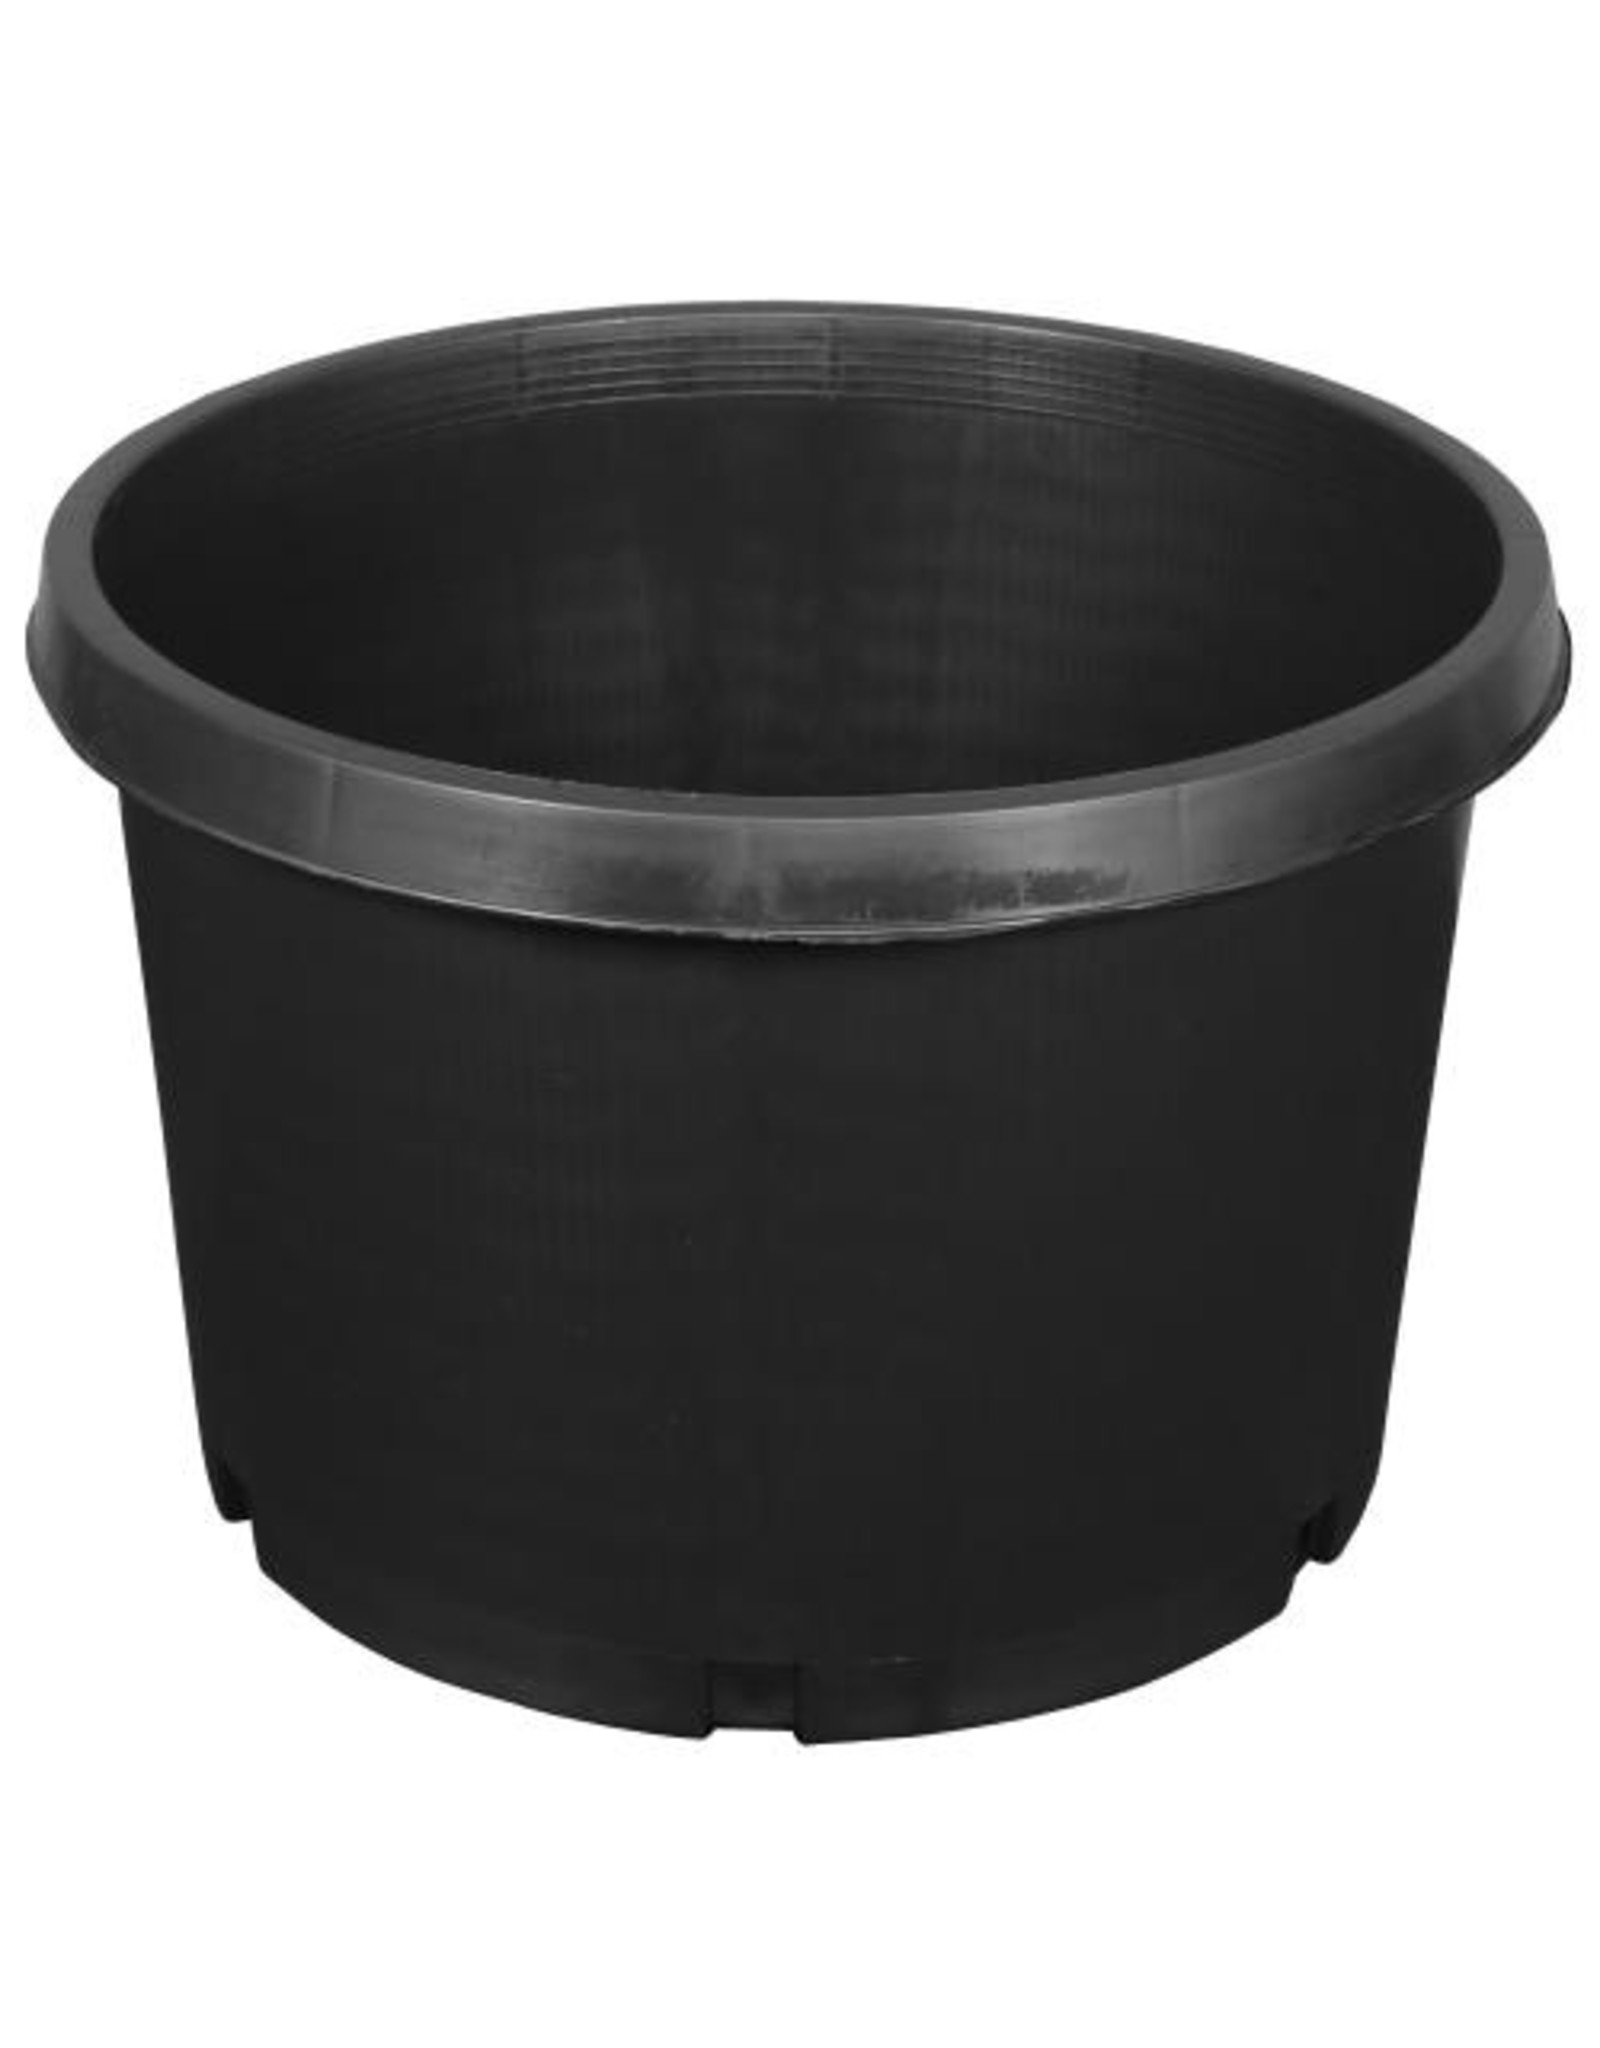 Nursery Pot Premium- 10 Gal